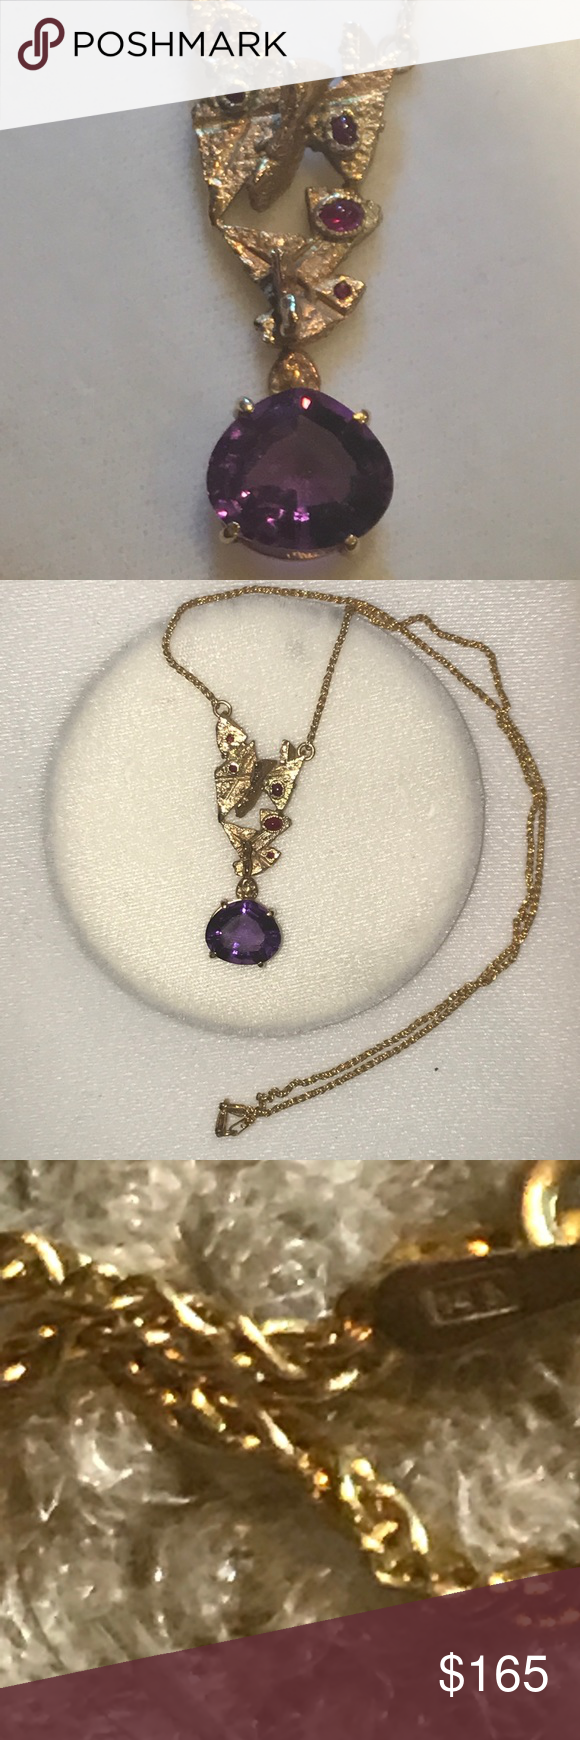 K gold amethyst and ruby necklace amethysts pendant set and